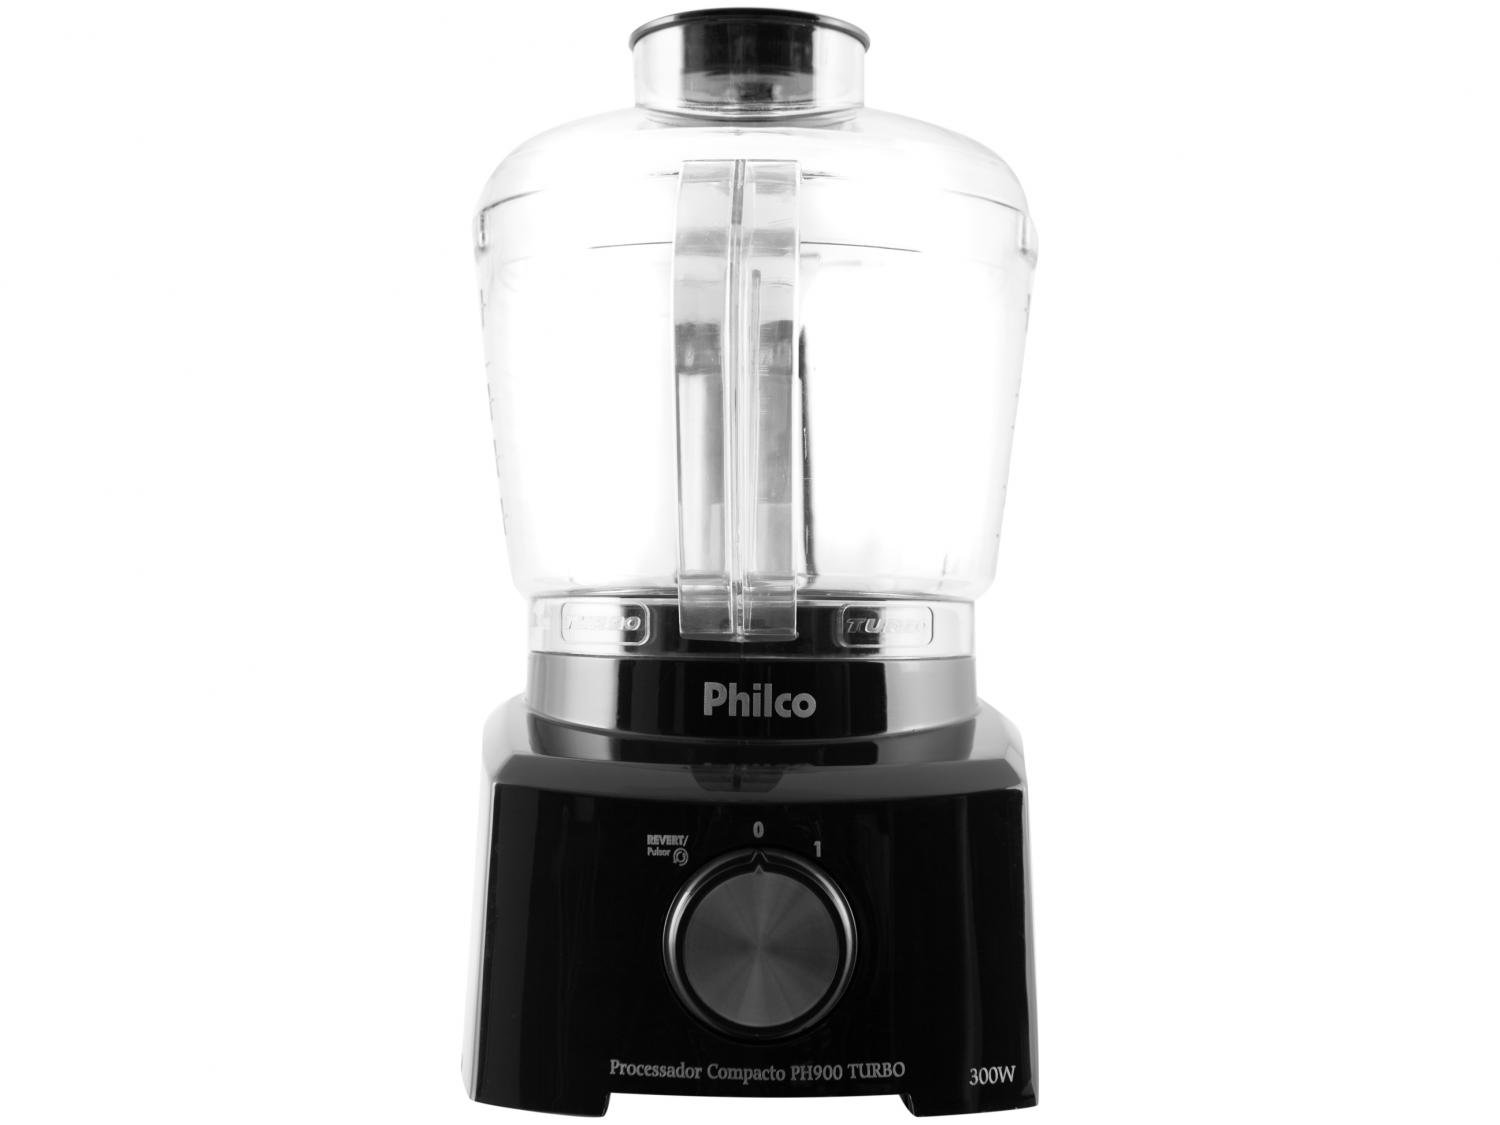 Mini Processador de Alimentos Philco PH900P Turbo 250W – Preto - 220V - 16